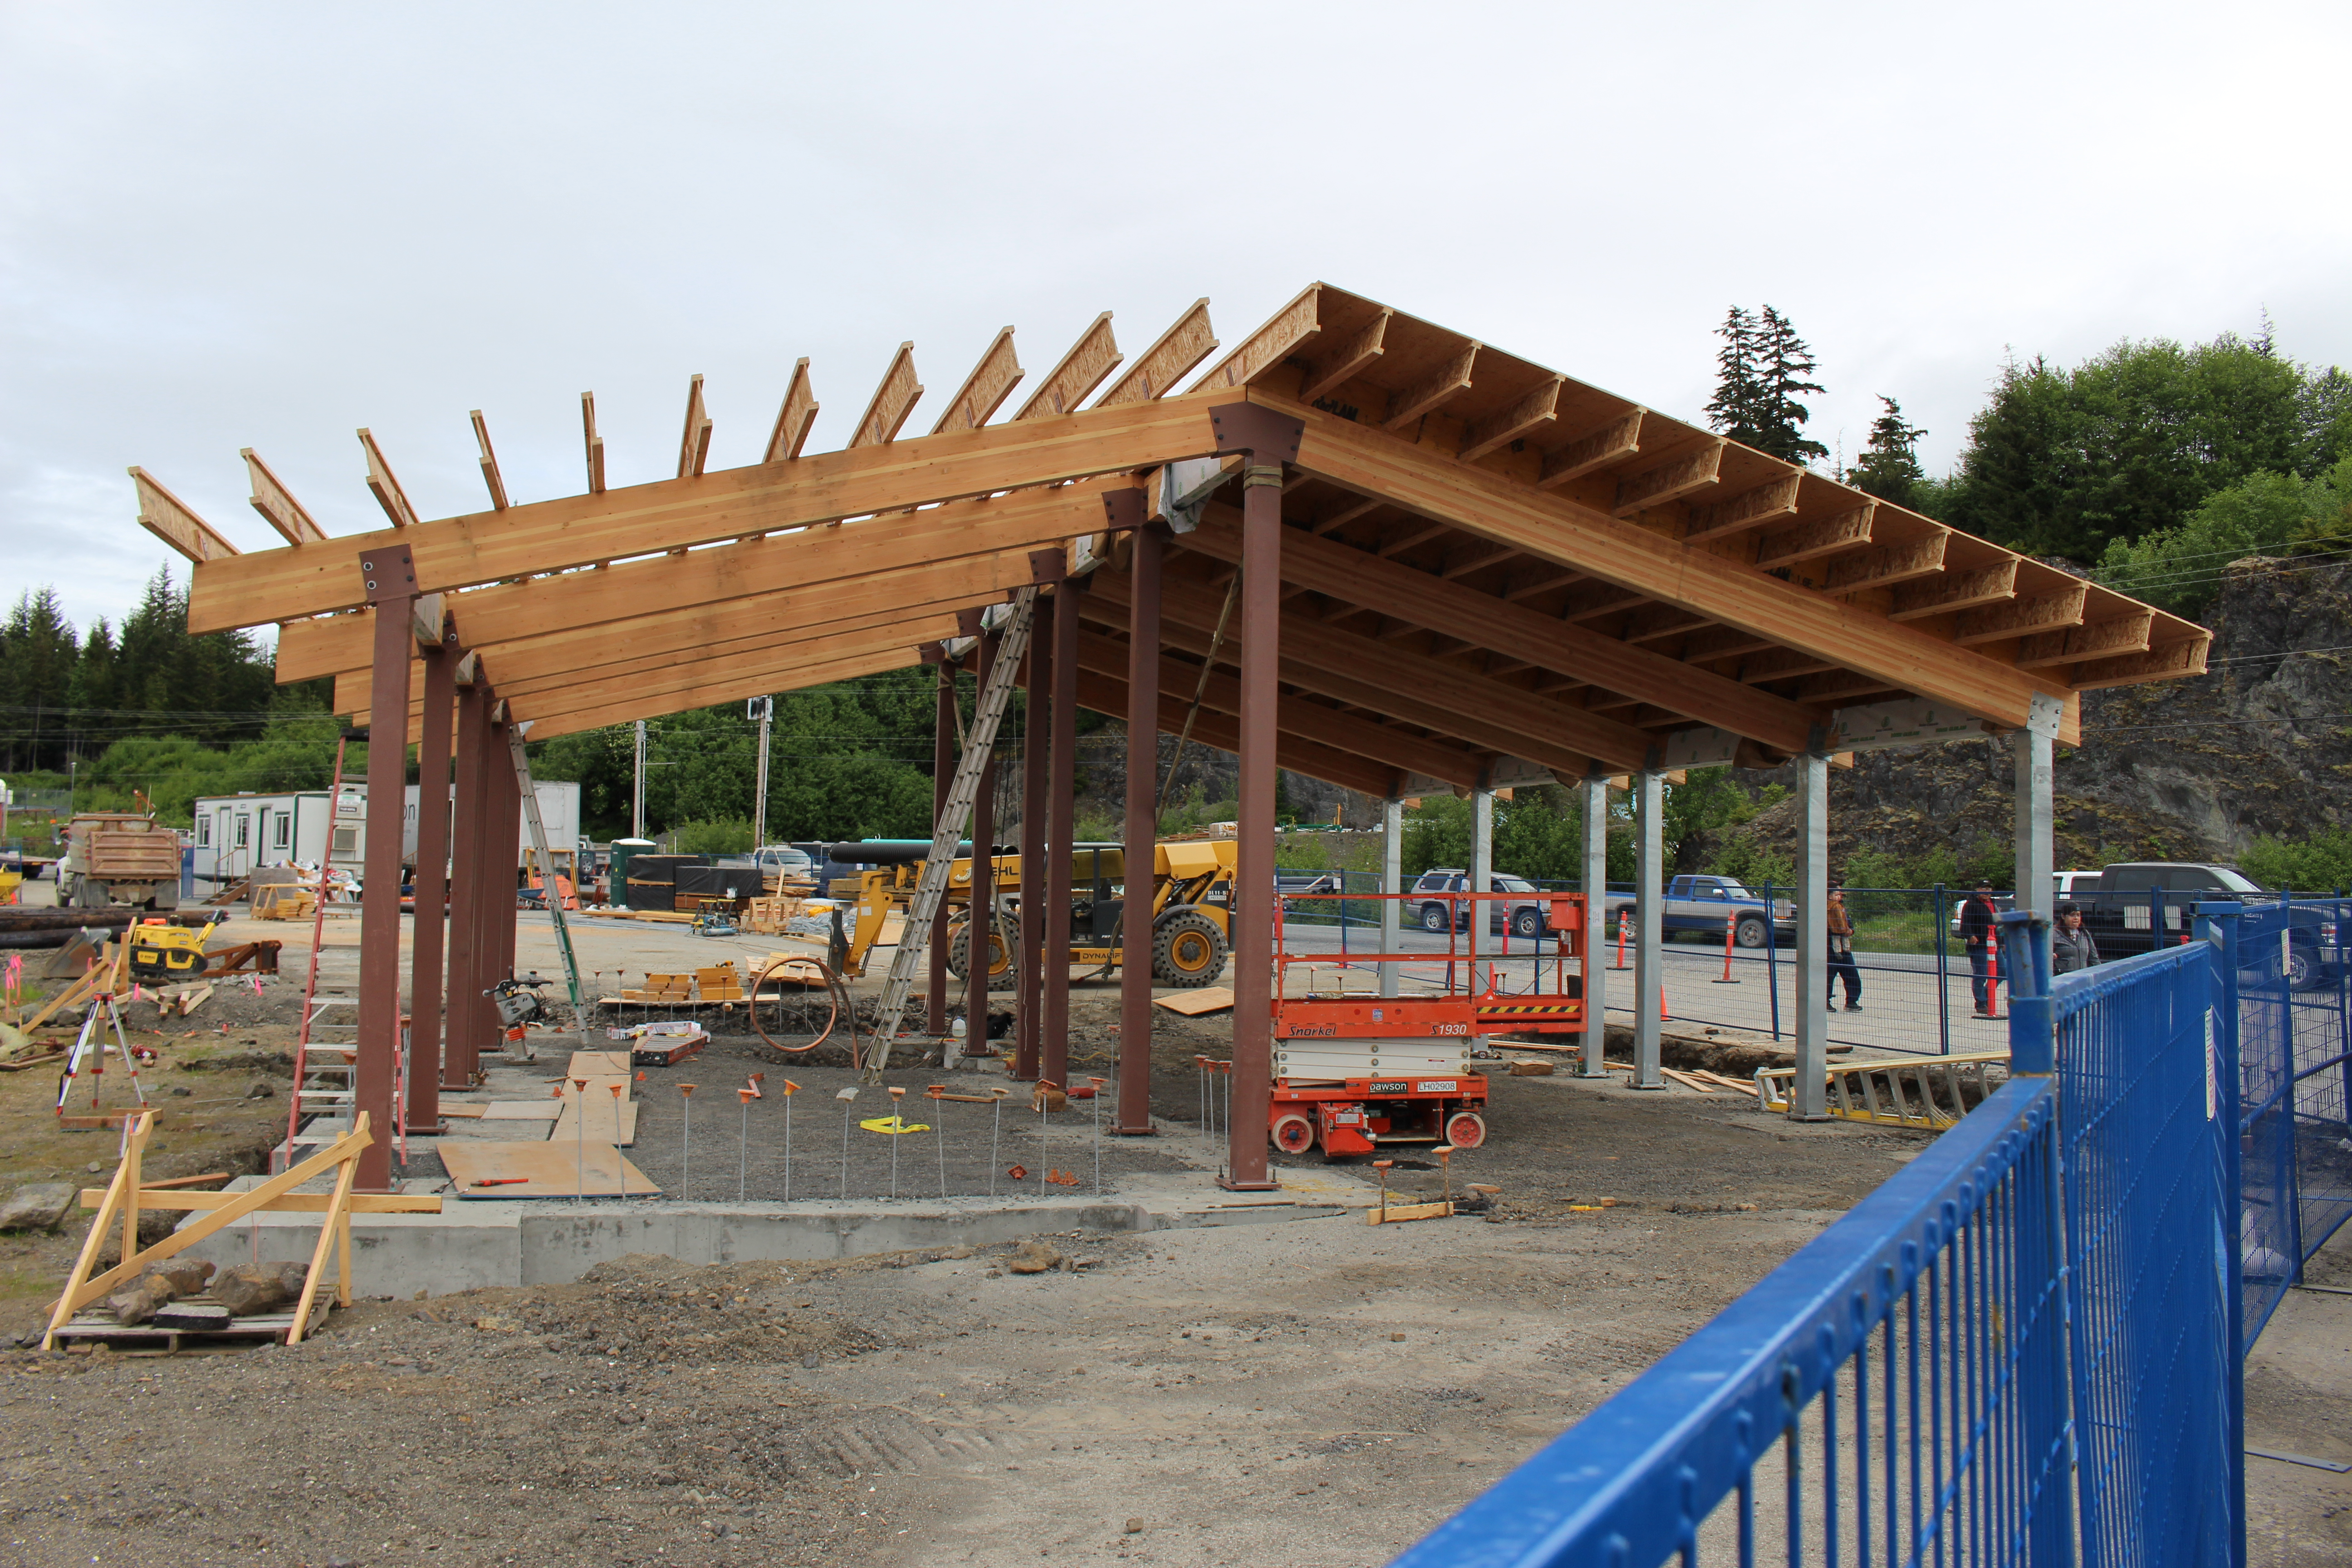 The construction of a new ferry terminal building for the community of Kake, Alaska is underway.